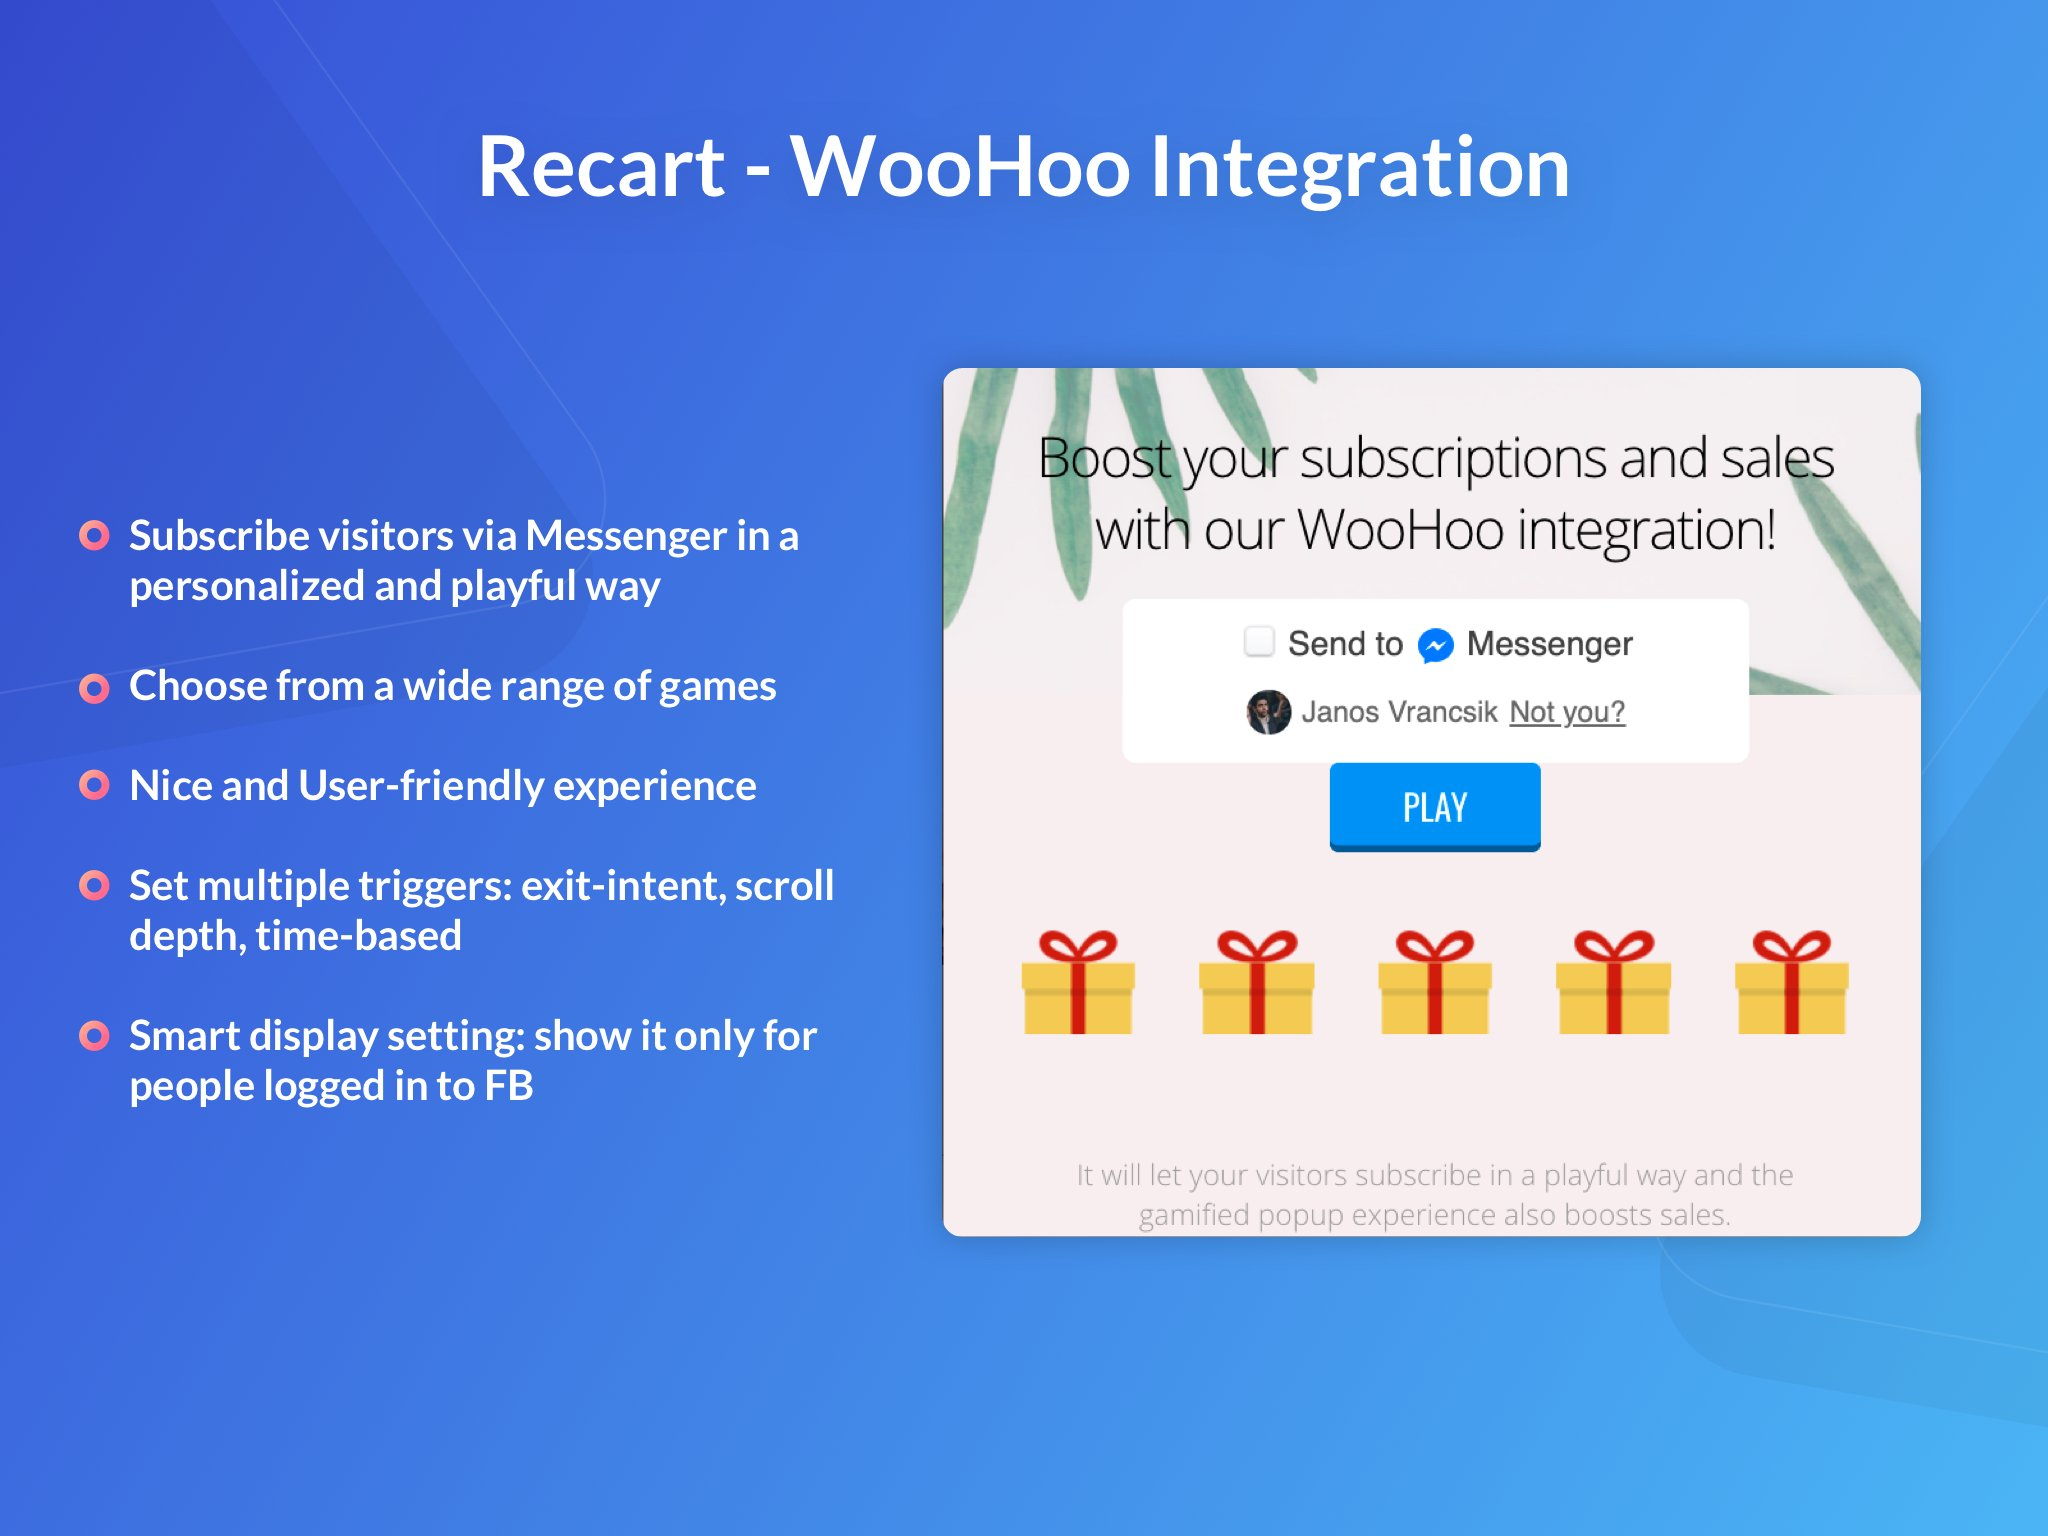 The Recart-WooHoo integration subscribes users in a playful way